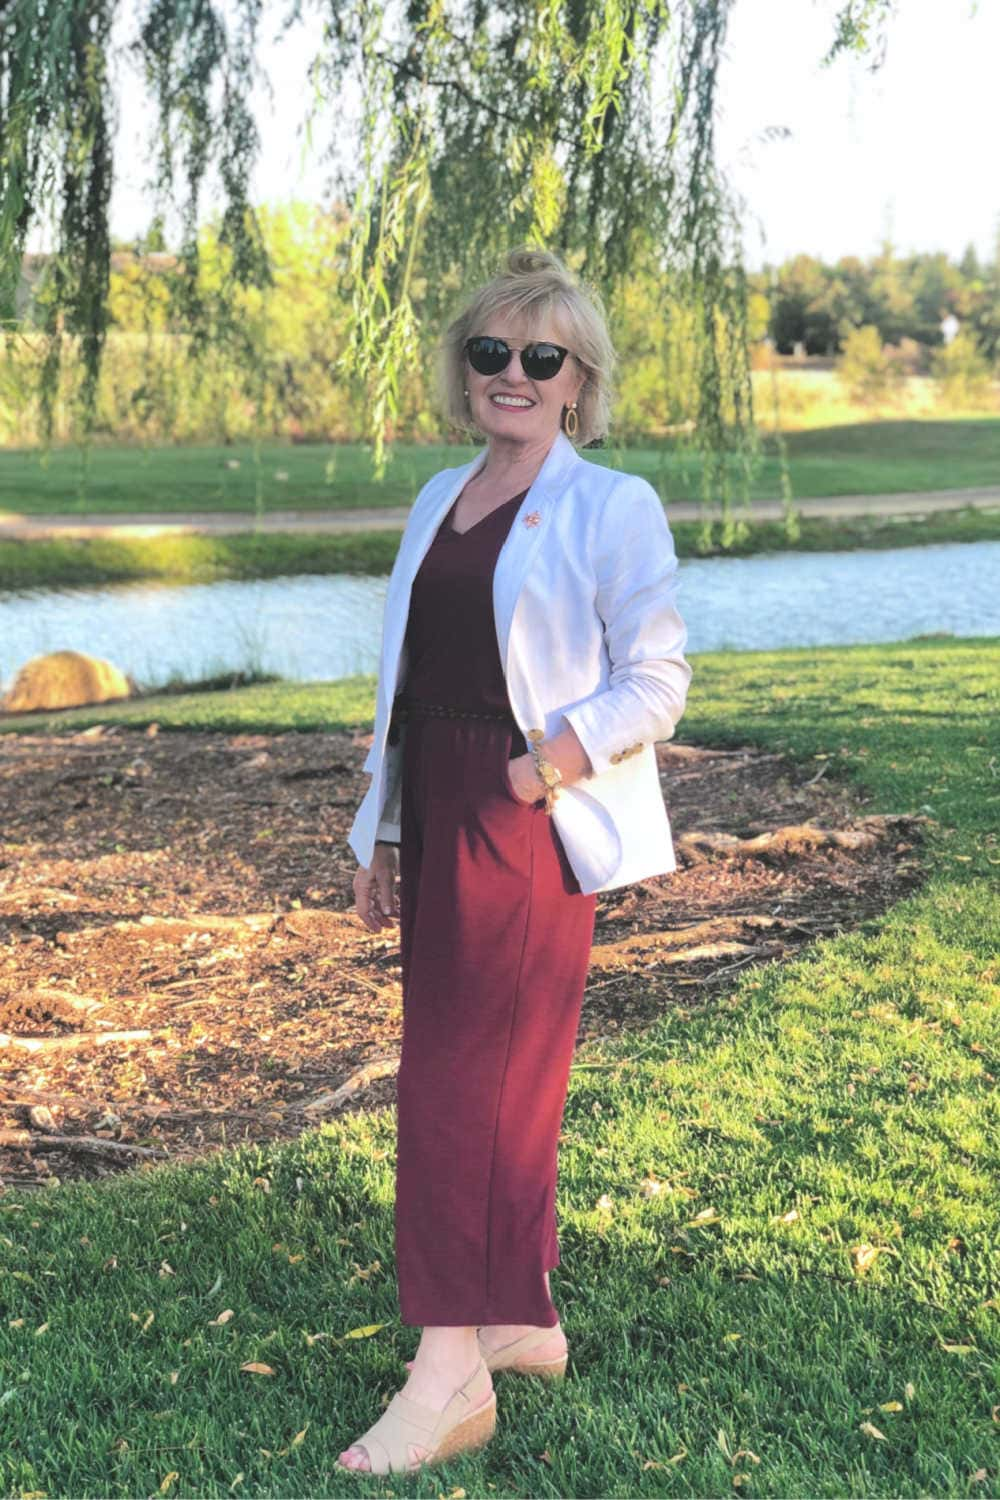 fashion blogger jennifer connolly showing wearing Talbots blazer over athleisure jumpsuit